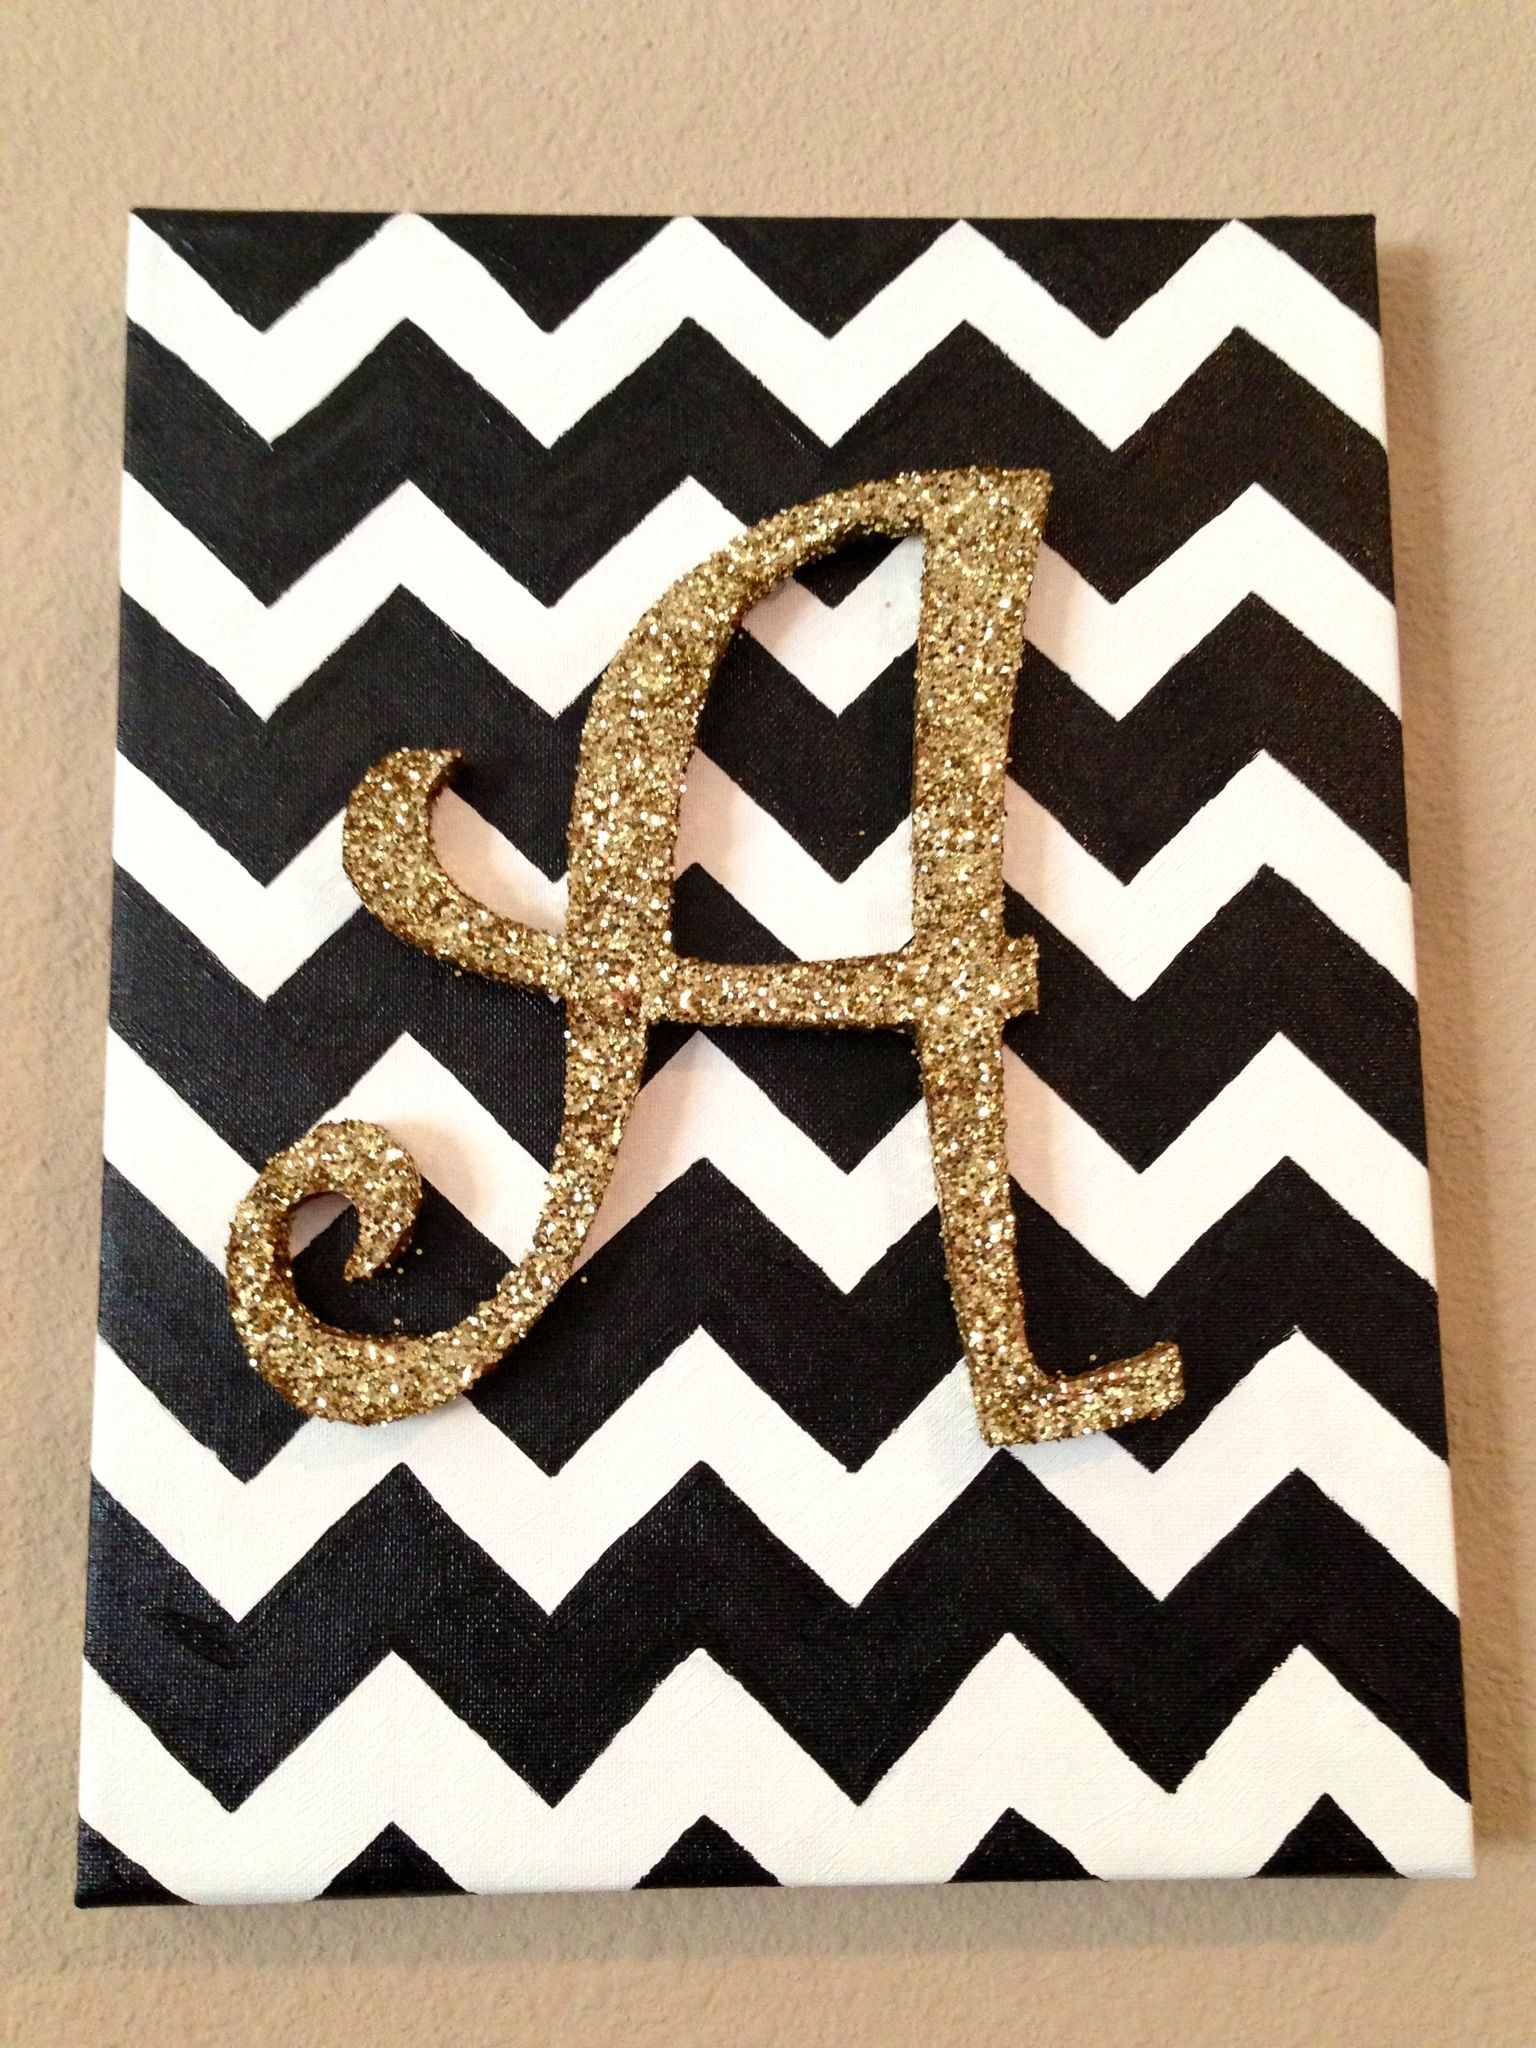 15 Of The Best Ideas For Diy Wooden Letter Projects With Tutorials Diy Nursery Monogram Diy Letters Glitter Letters